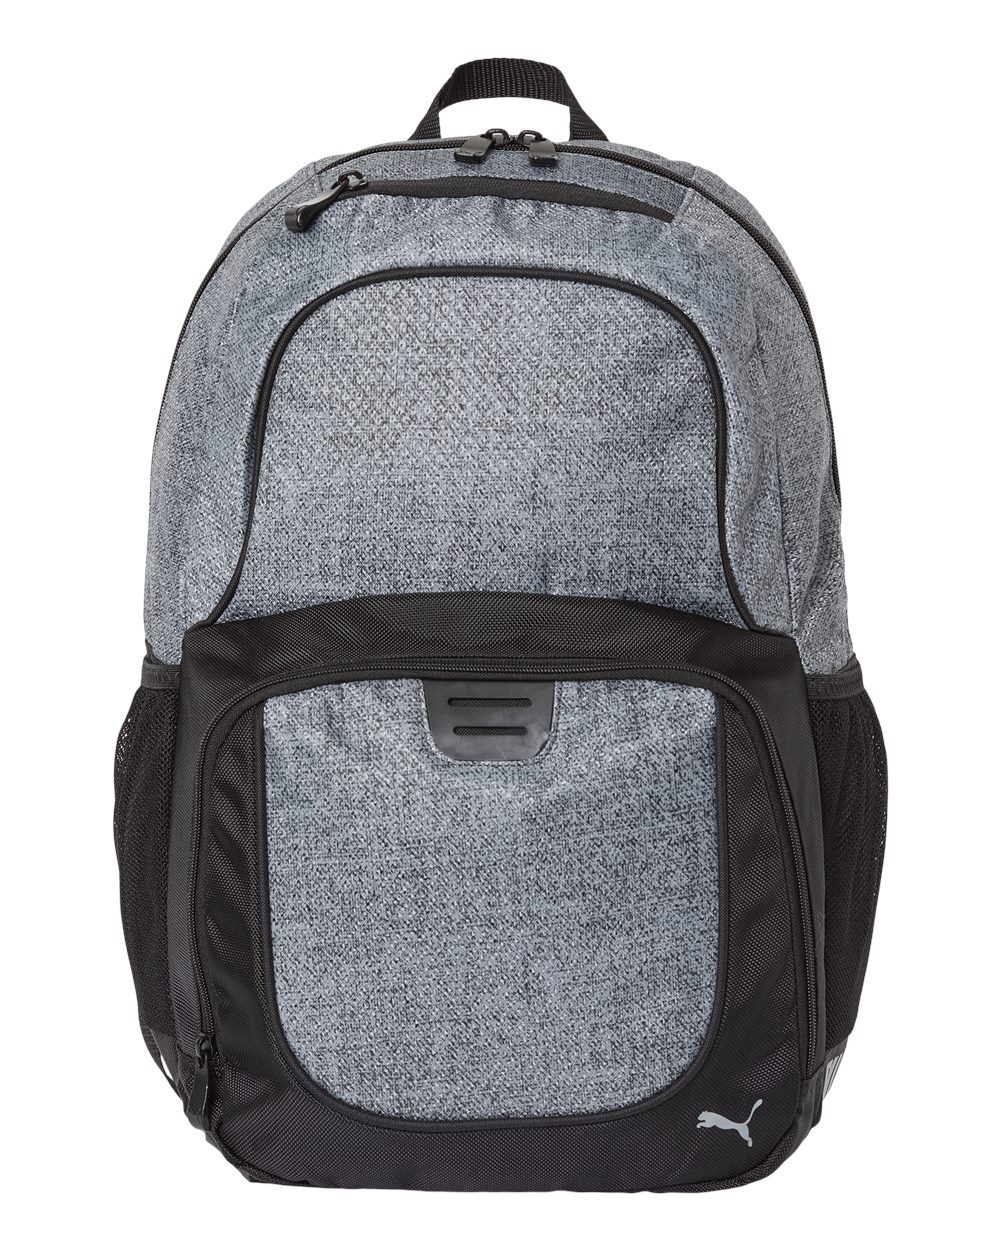 25L Backpack-Puma